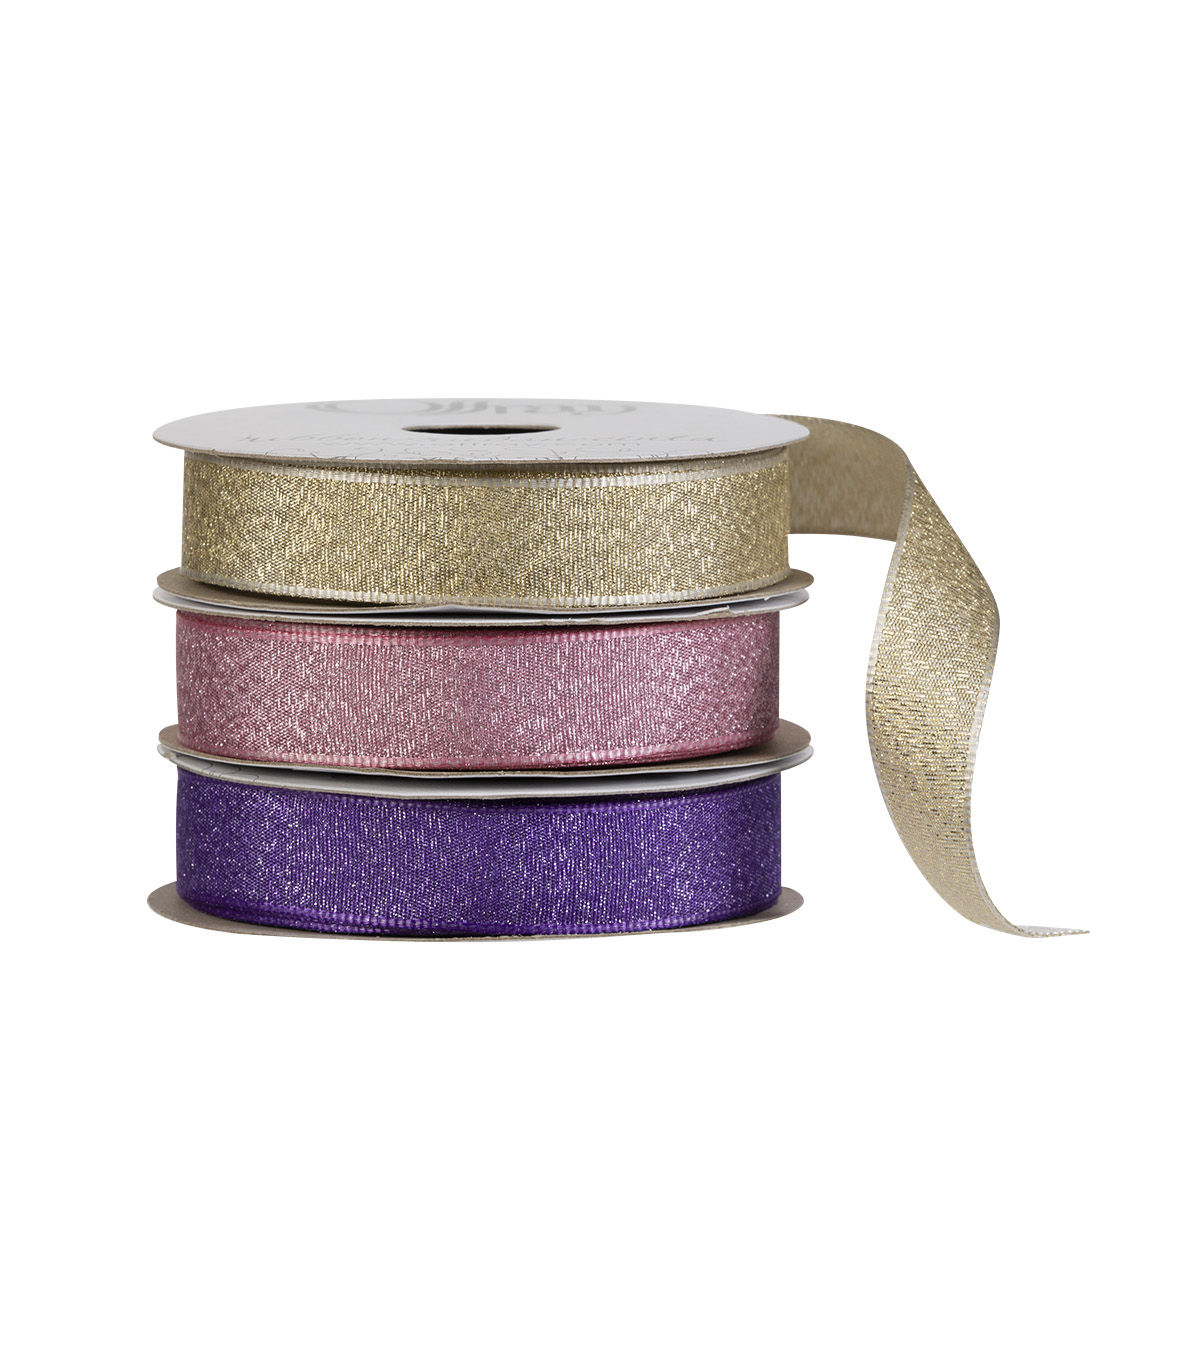 "Offray 5/8""x9' Luxe Metallic Woven Wired Edge Ribbon"